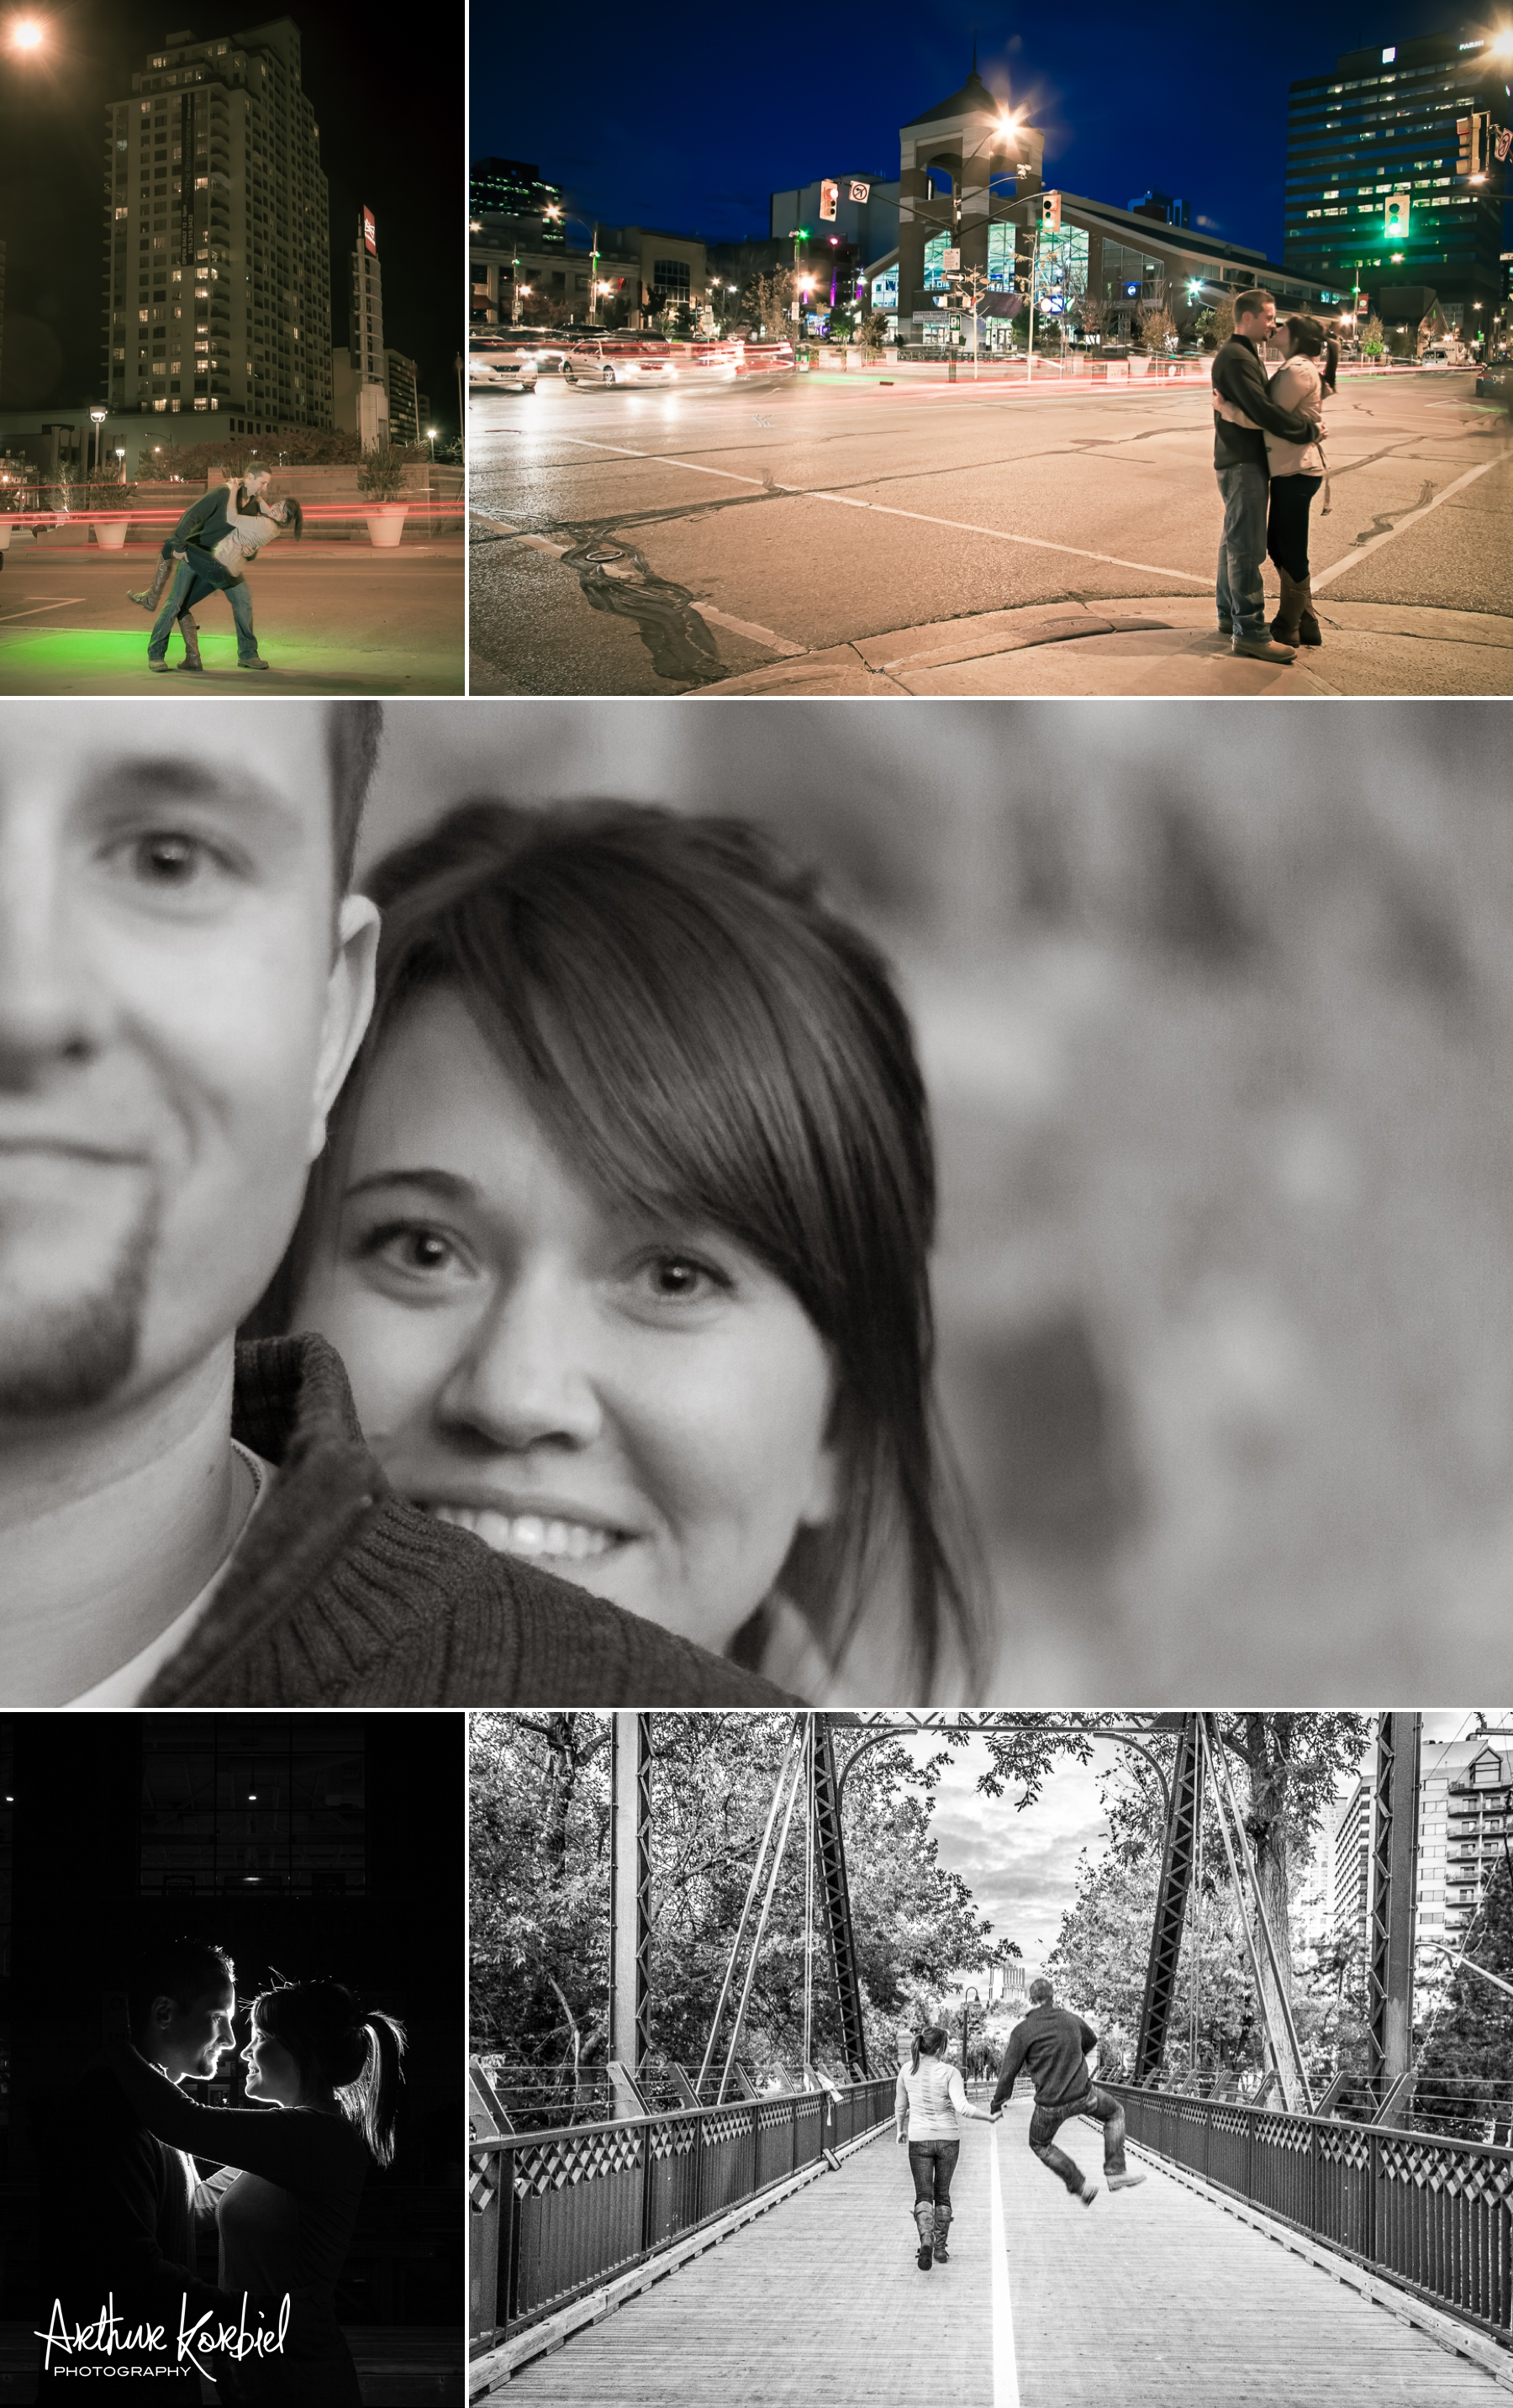 Arthur Korbiel Photography - London Engagement Photographer - Katie & Mike_008.jpg